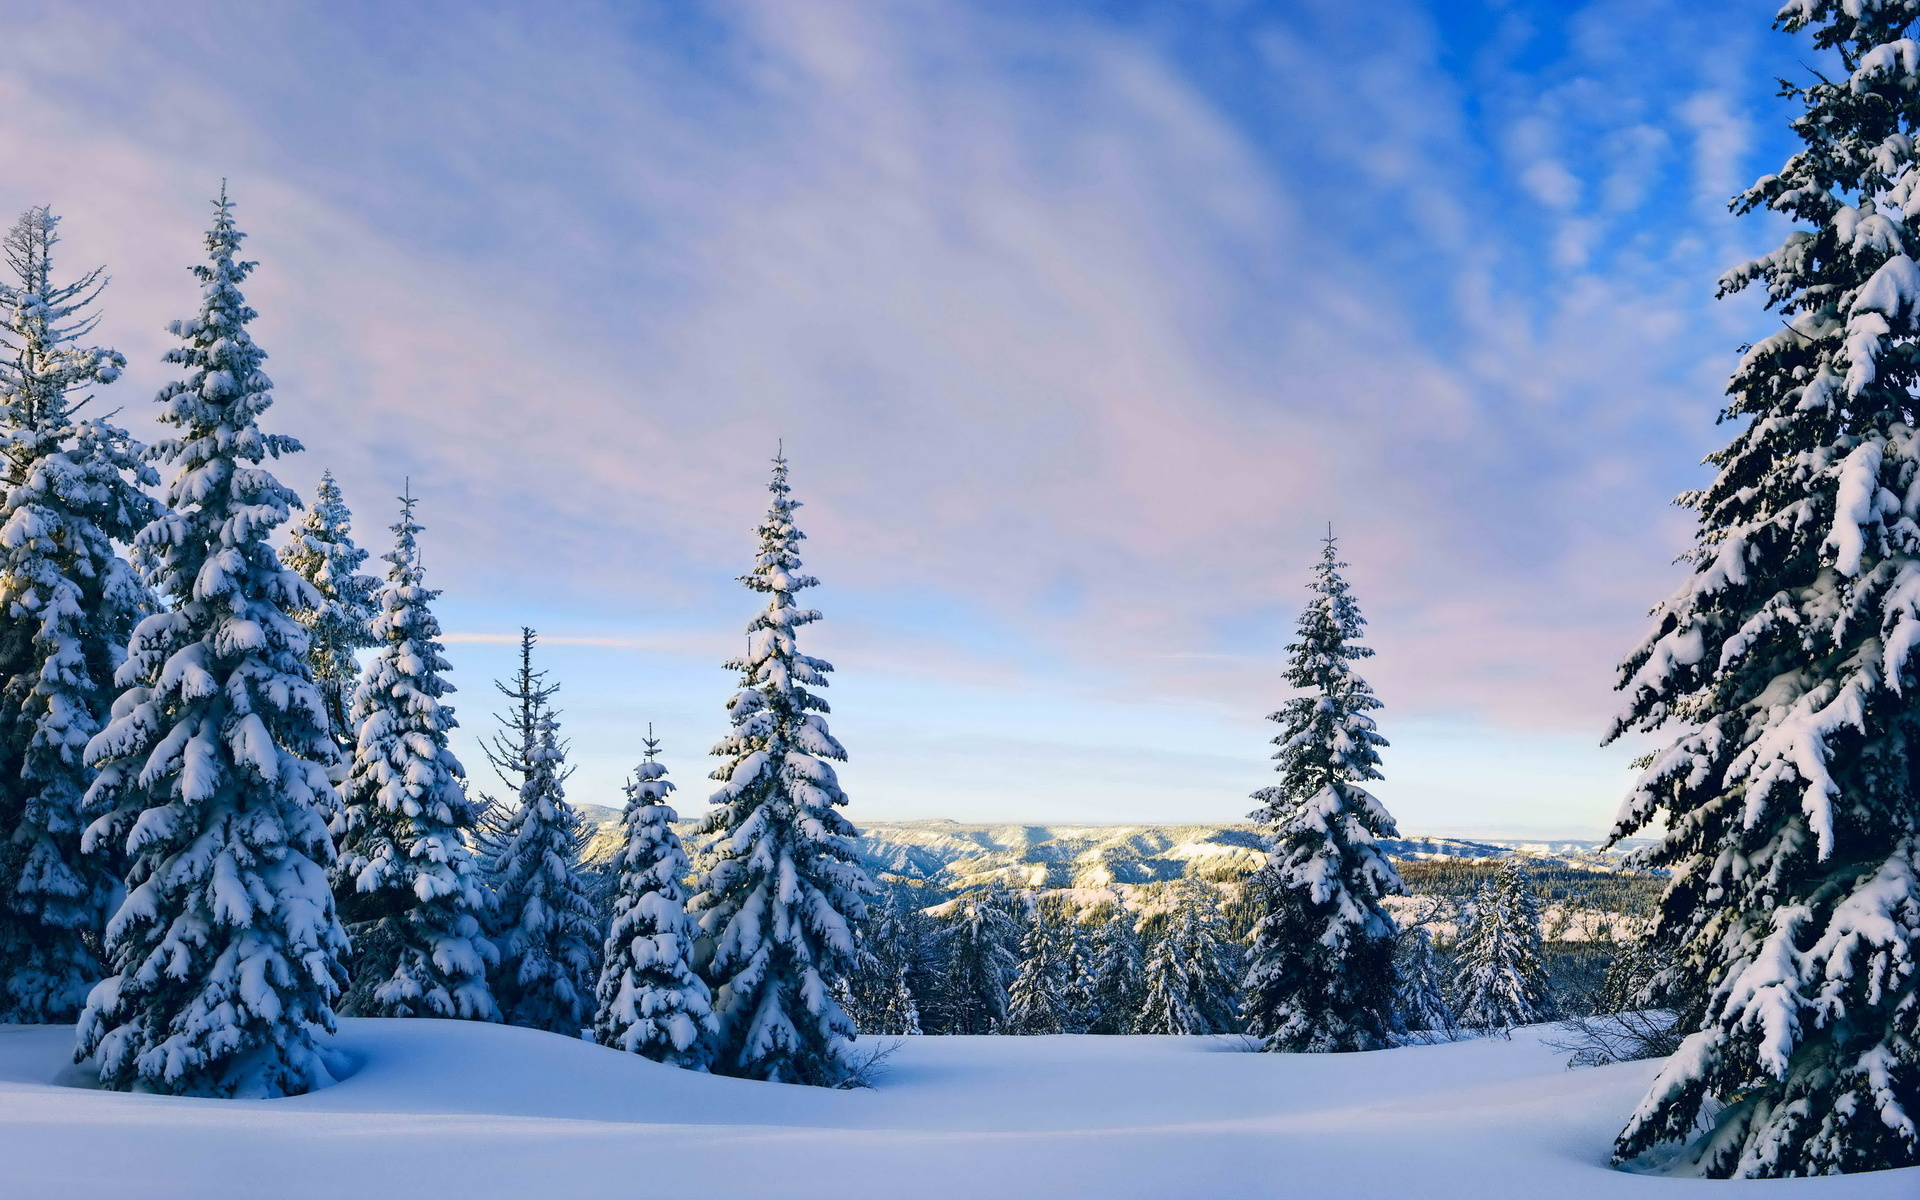 winter mountains hills trees snow landscape